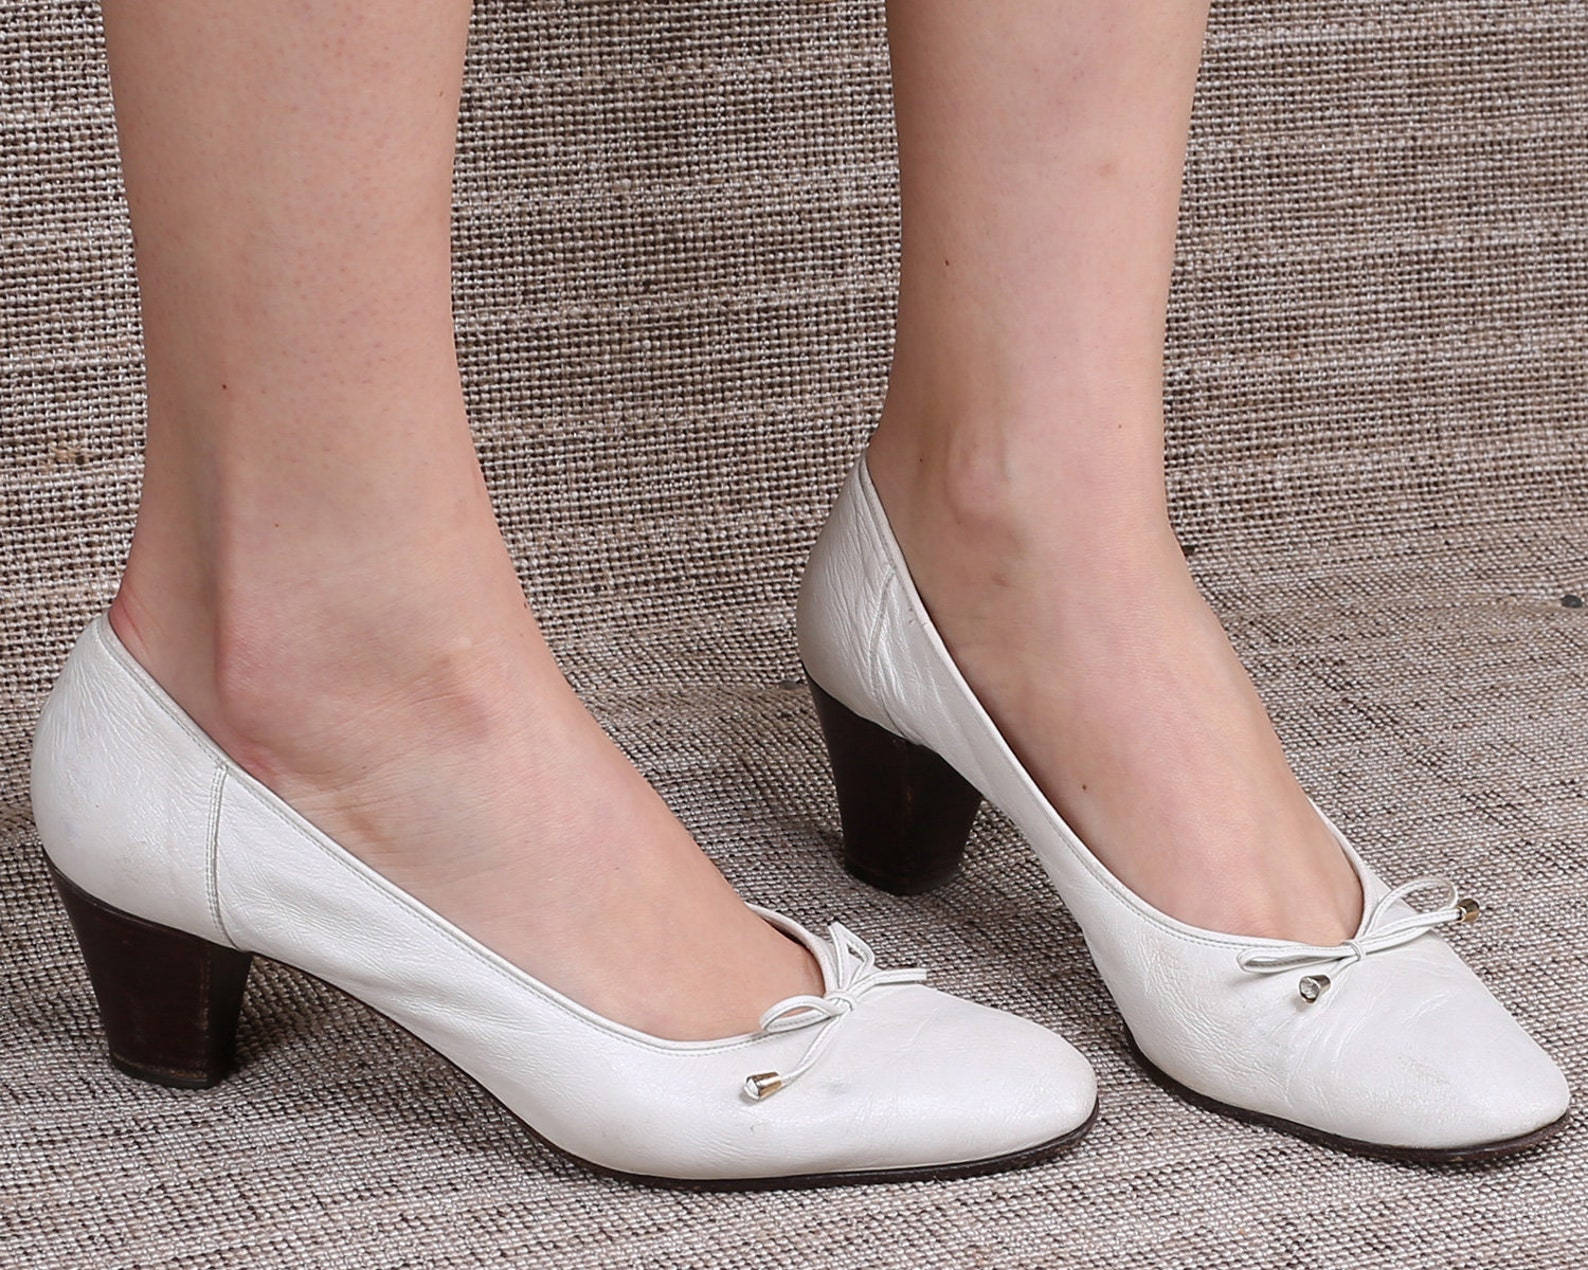 us size 9.5 white leather flats 80s oxford pumps white string tie ballet slip ons stacked heel vintage shoes 1980s italy made. e